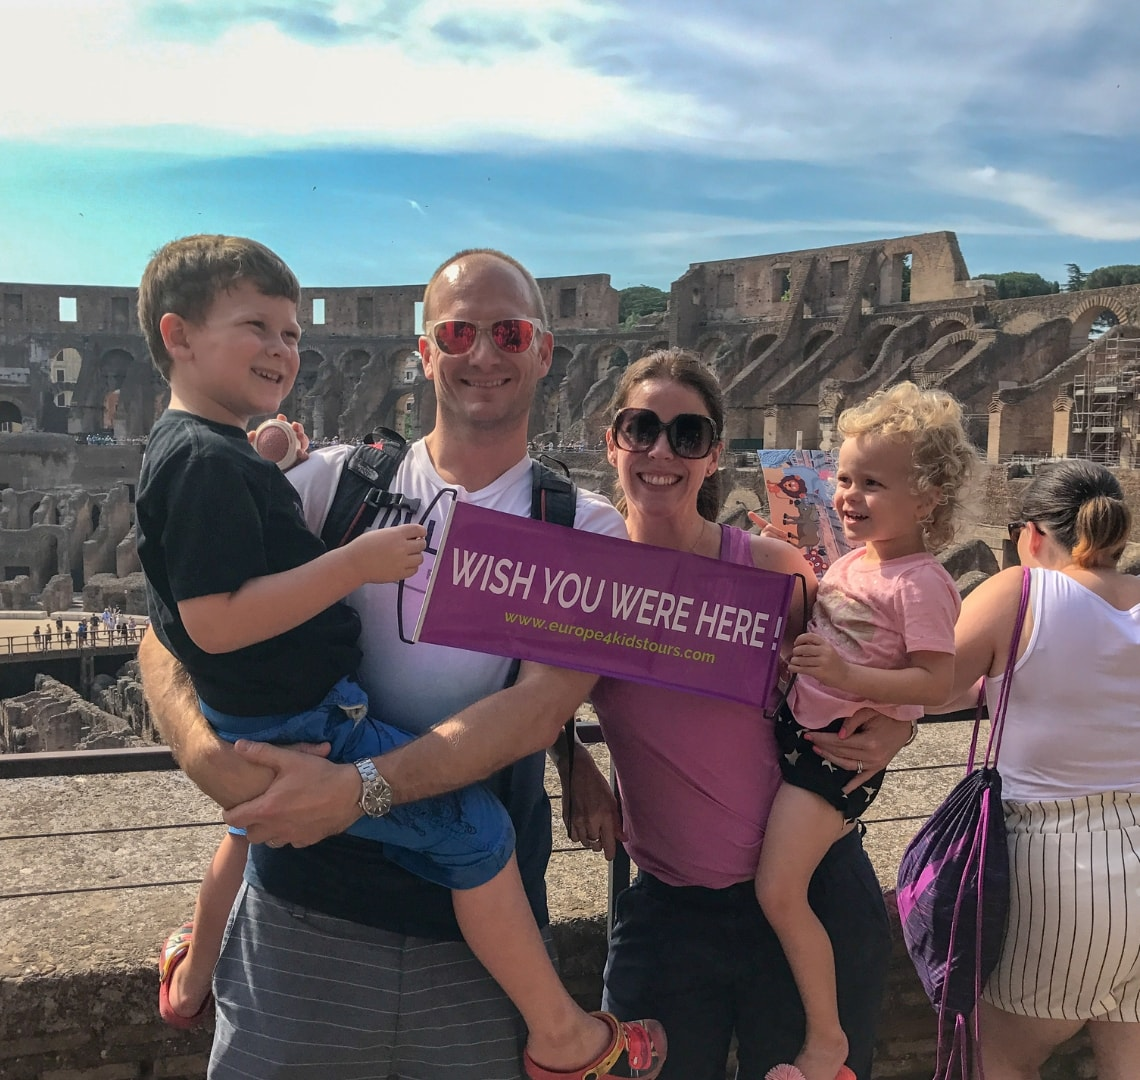 How to have an epic family holiday - Wanderlust family photo in coliseum Rome